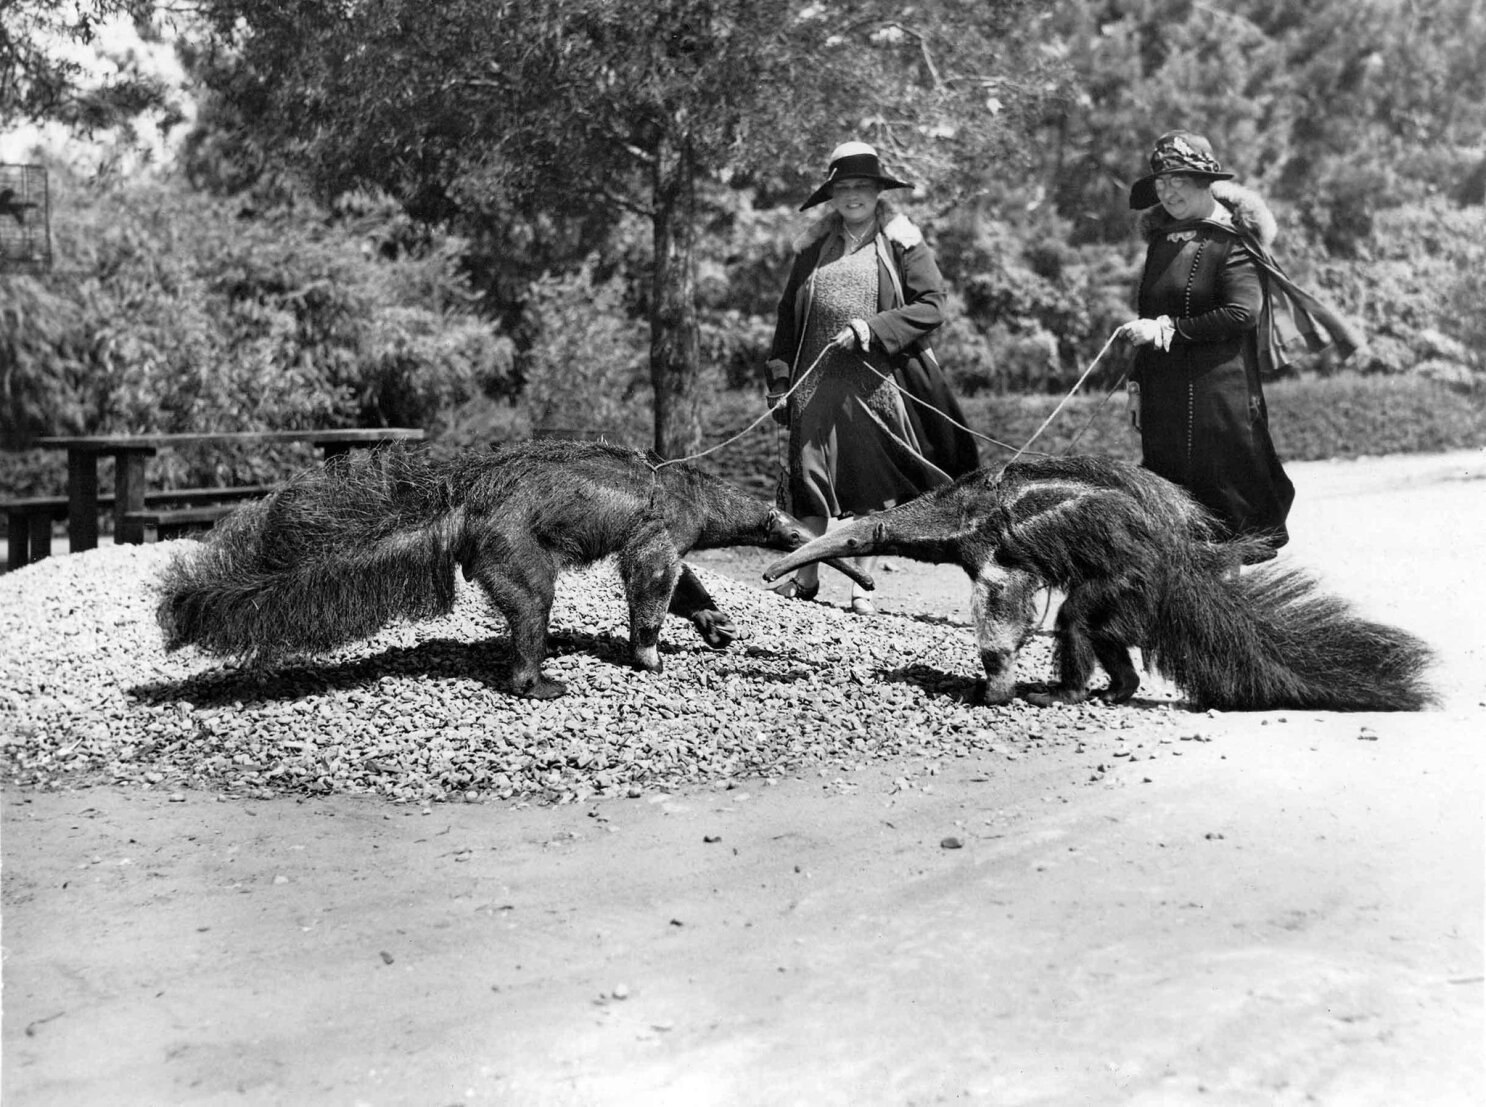 1adc7a2a8 Eventful century: How San Diego Zoo evolved into a giant - The San Diego  Union-Tribune